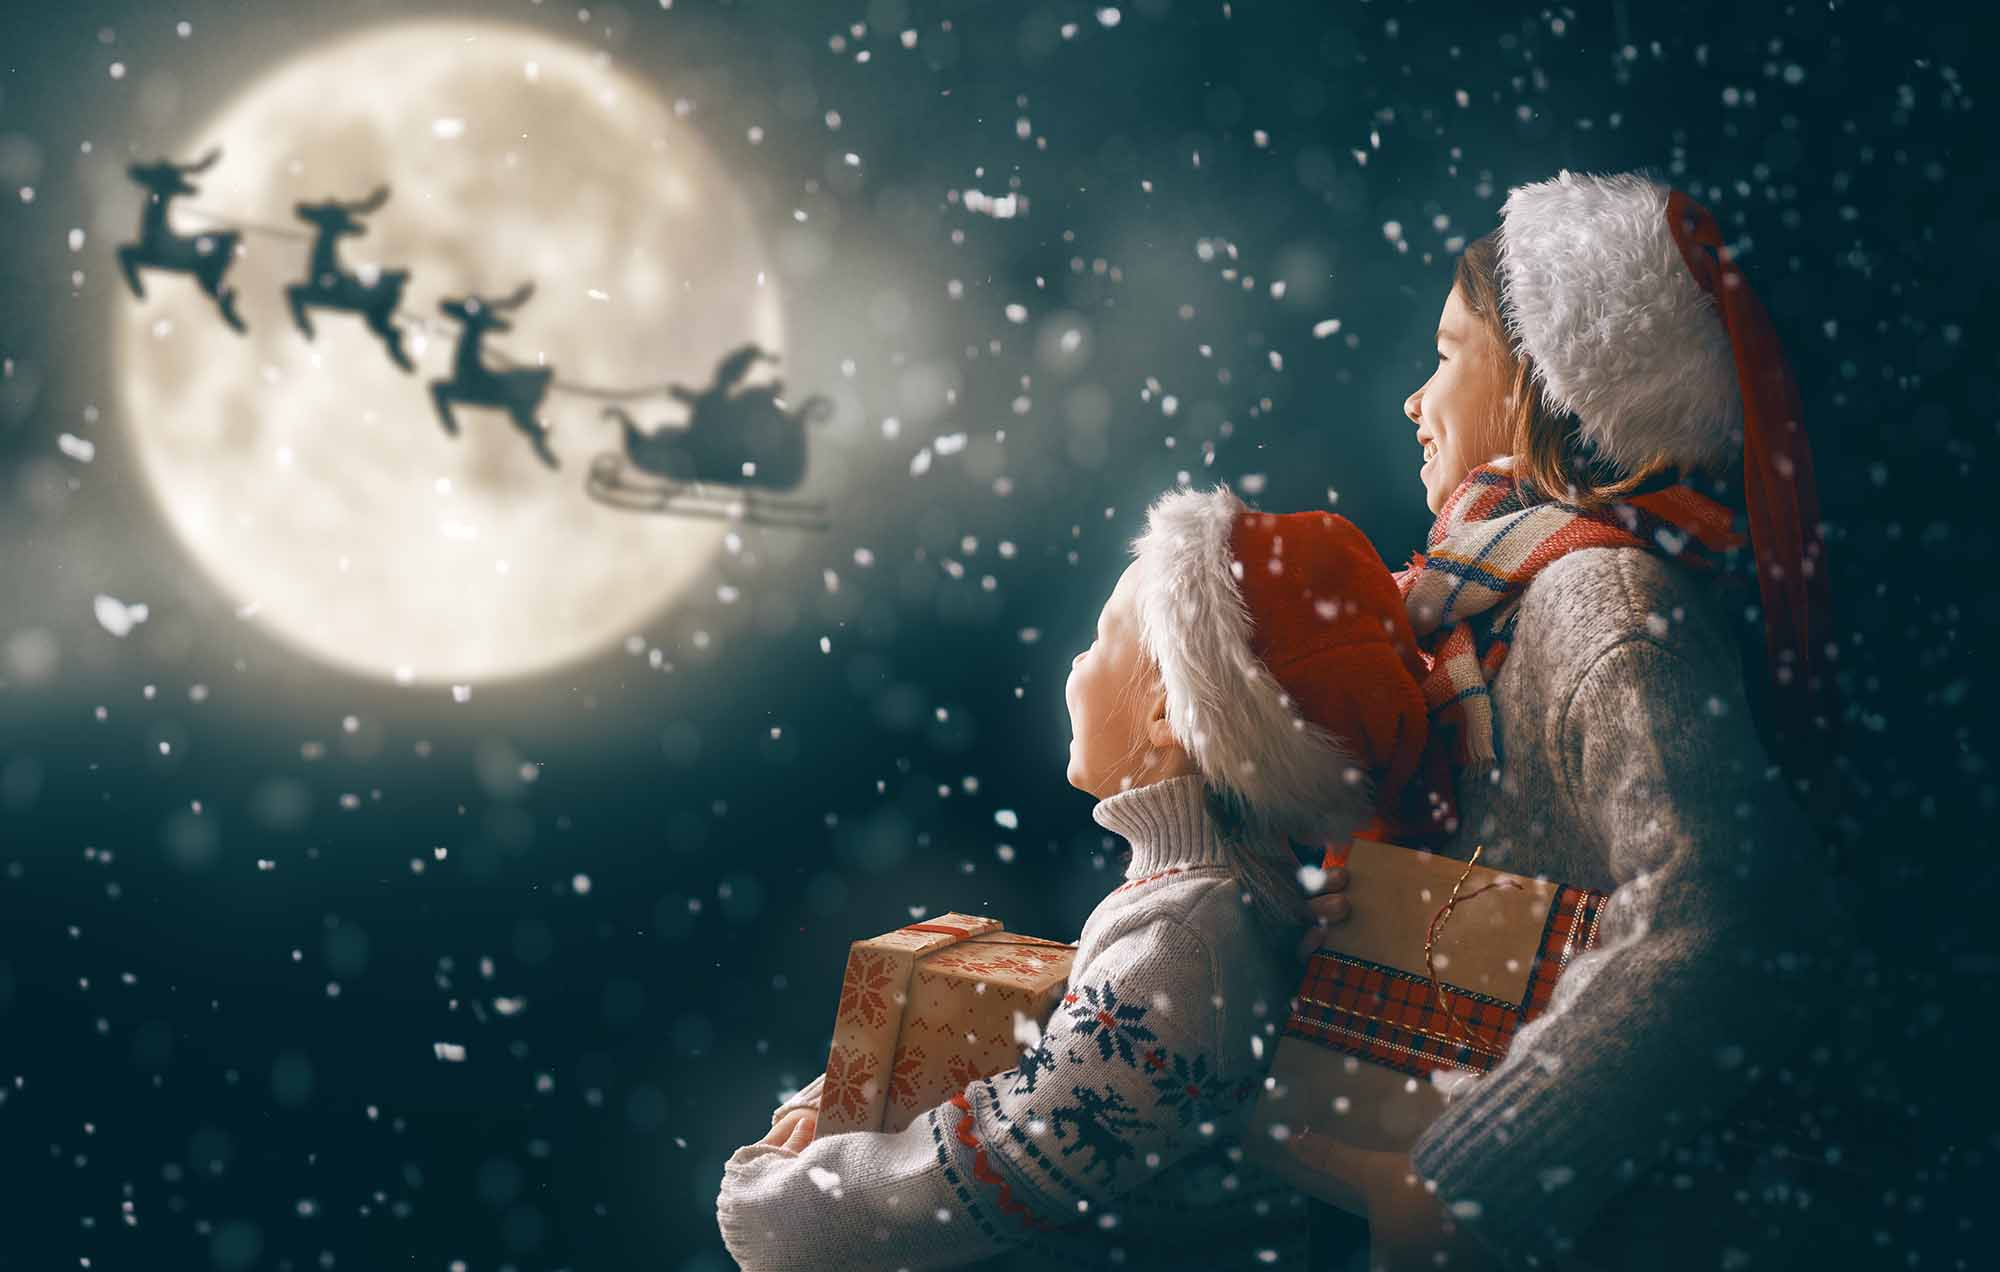 Merry Christmas and happy holidays! Cute little children with xmas presents. Santa Claus flying in his sleigh against moon sky. Kids enjoying the holiday with gifts on dark background.; Shutterstock ID 1558767518; Purchase Order: -